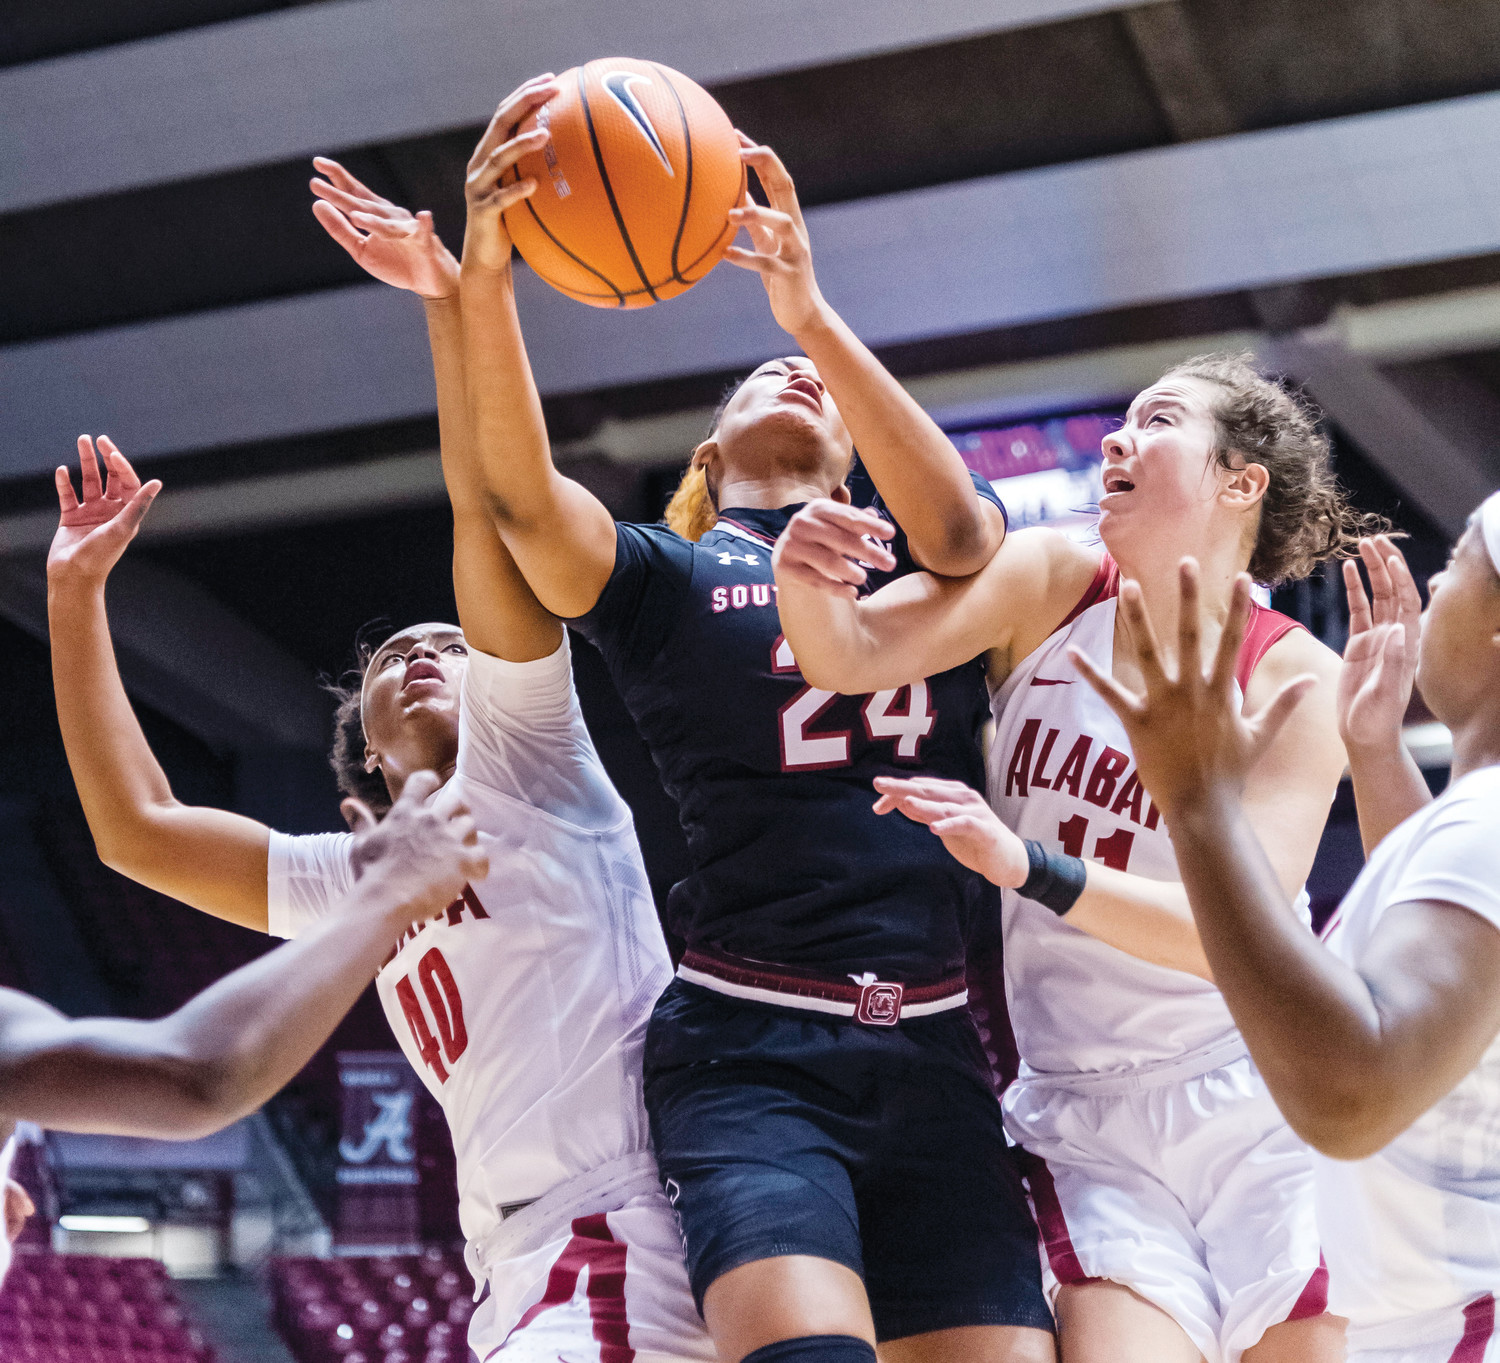 South Carolina forward LeLe Grissett (24) fights for possession under the basket against Alabama forward Jasmine Walker (40) and guard Hannah Cook (11) during the Gamecocks' 79-66 victory over the Crimson Tide on  Thursday in Tuscaloosa, Alabama.